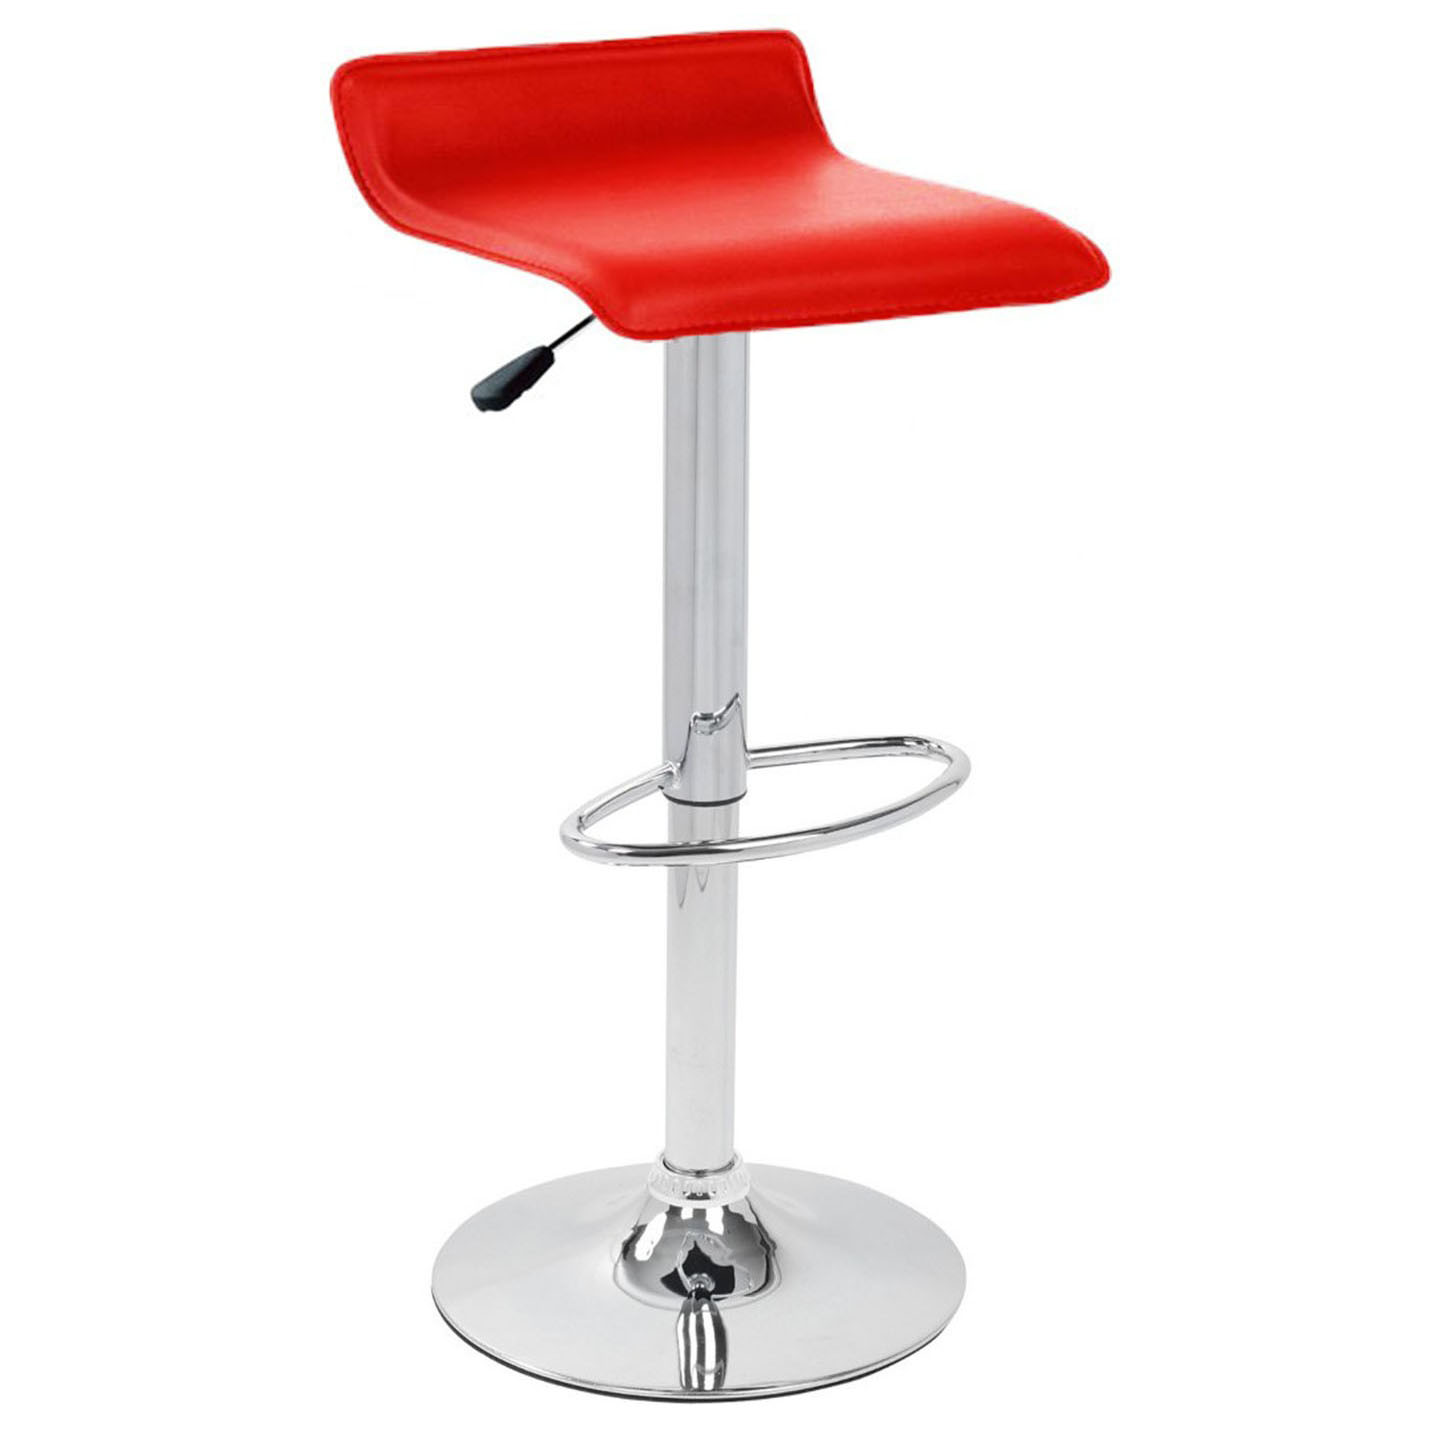 Baceno Bar Stool - Red